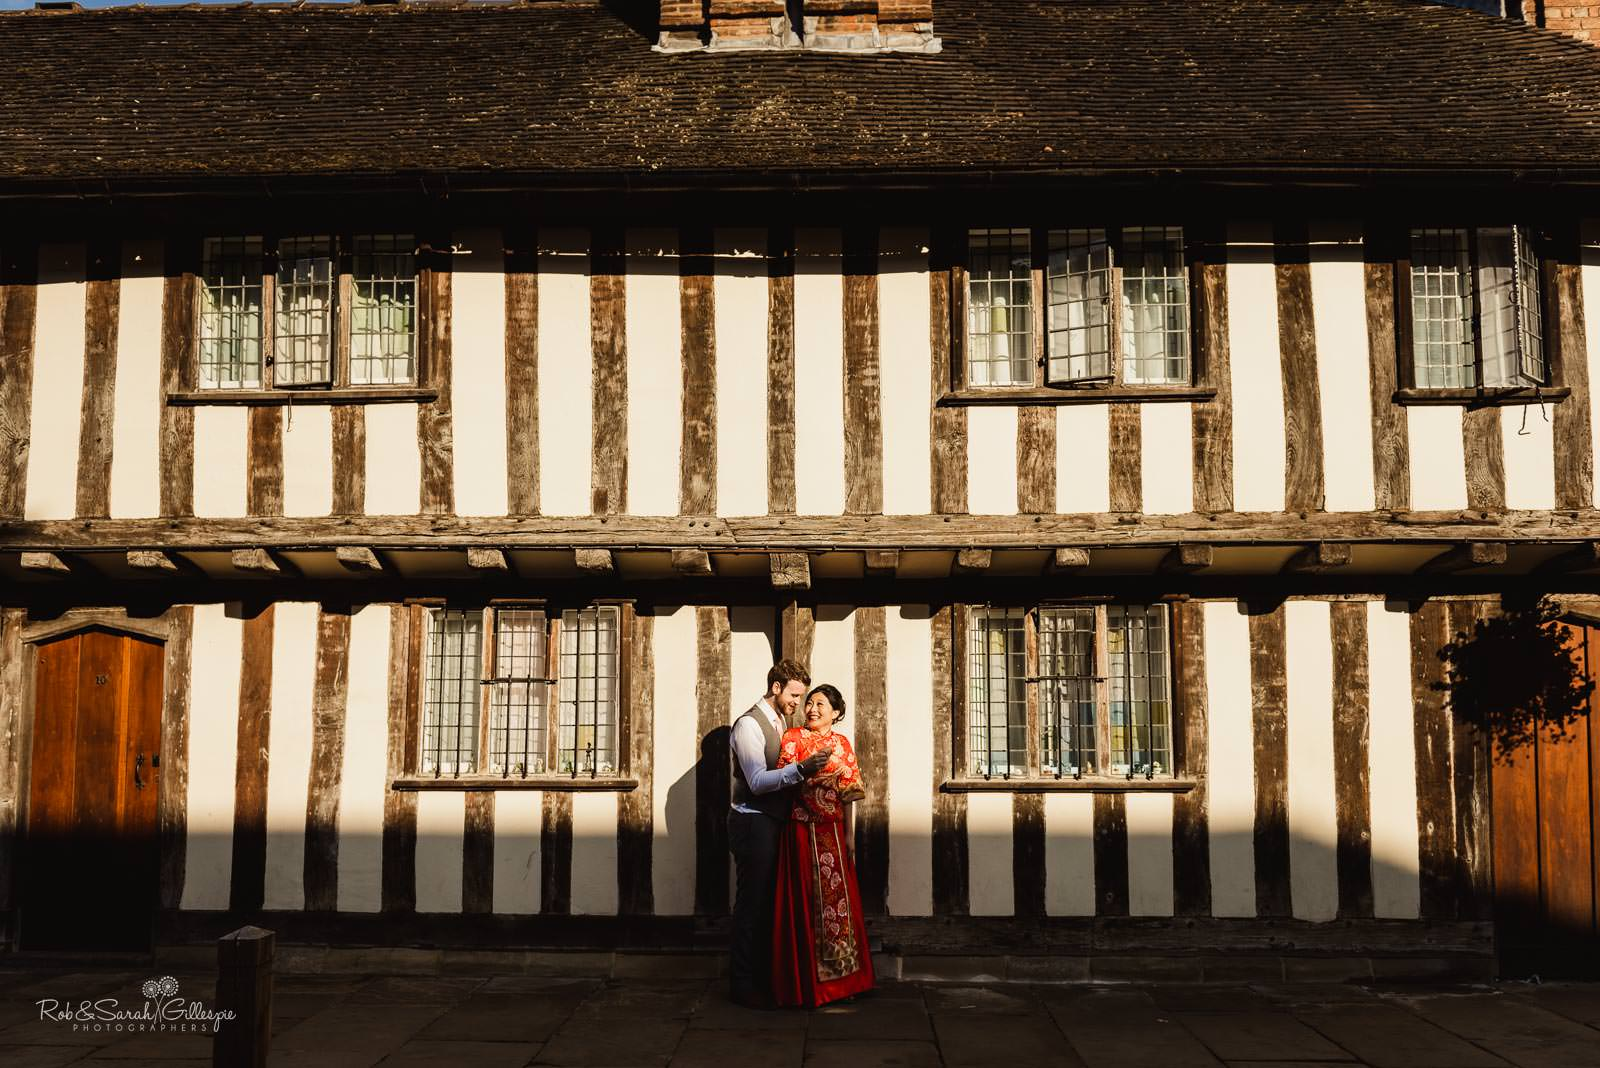 Bride and groom in front of old building in Stratford upon Avon